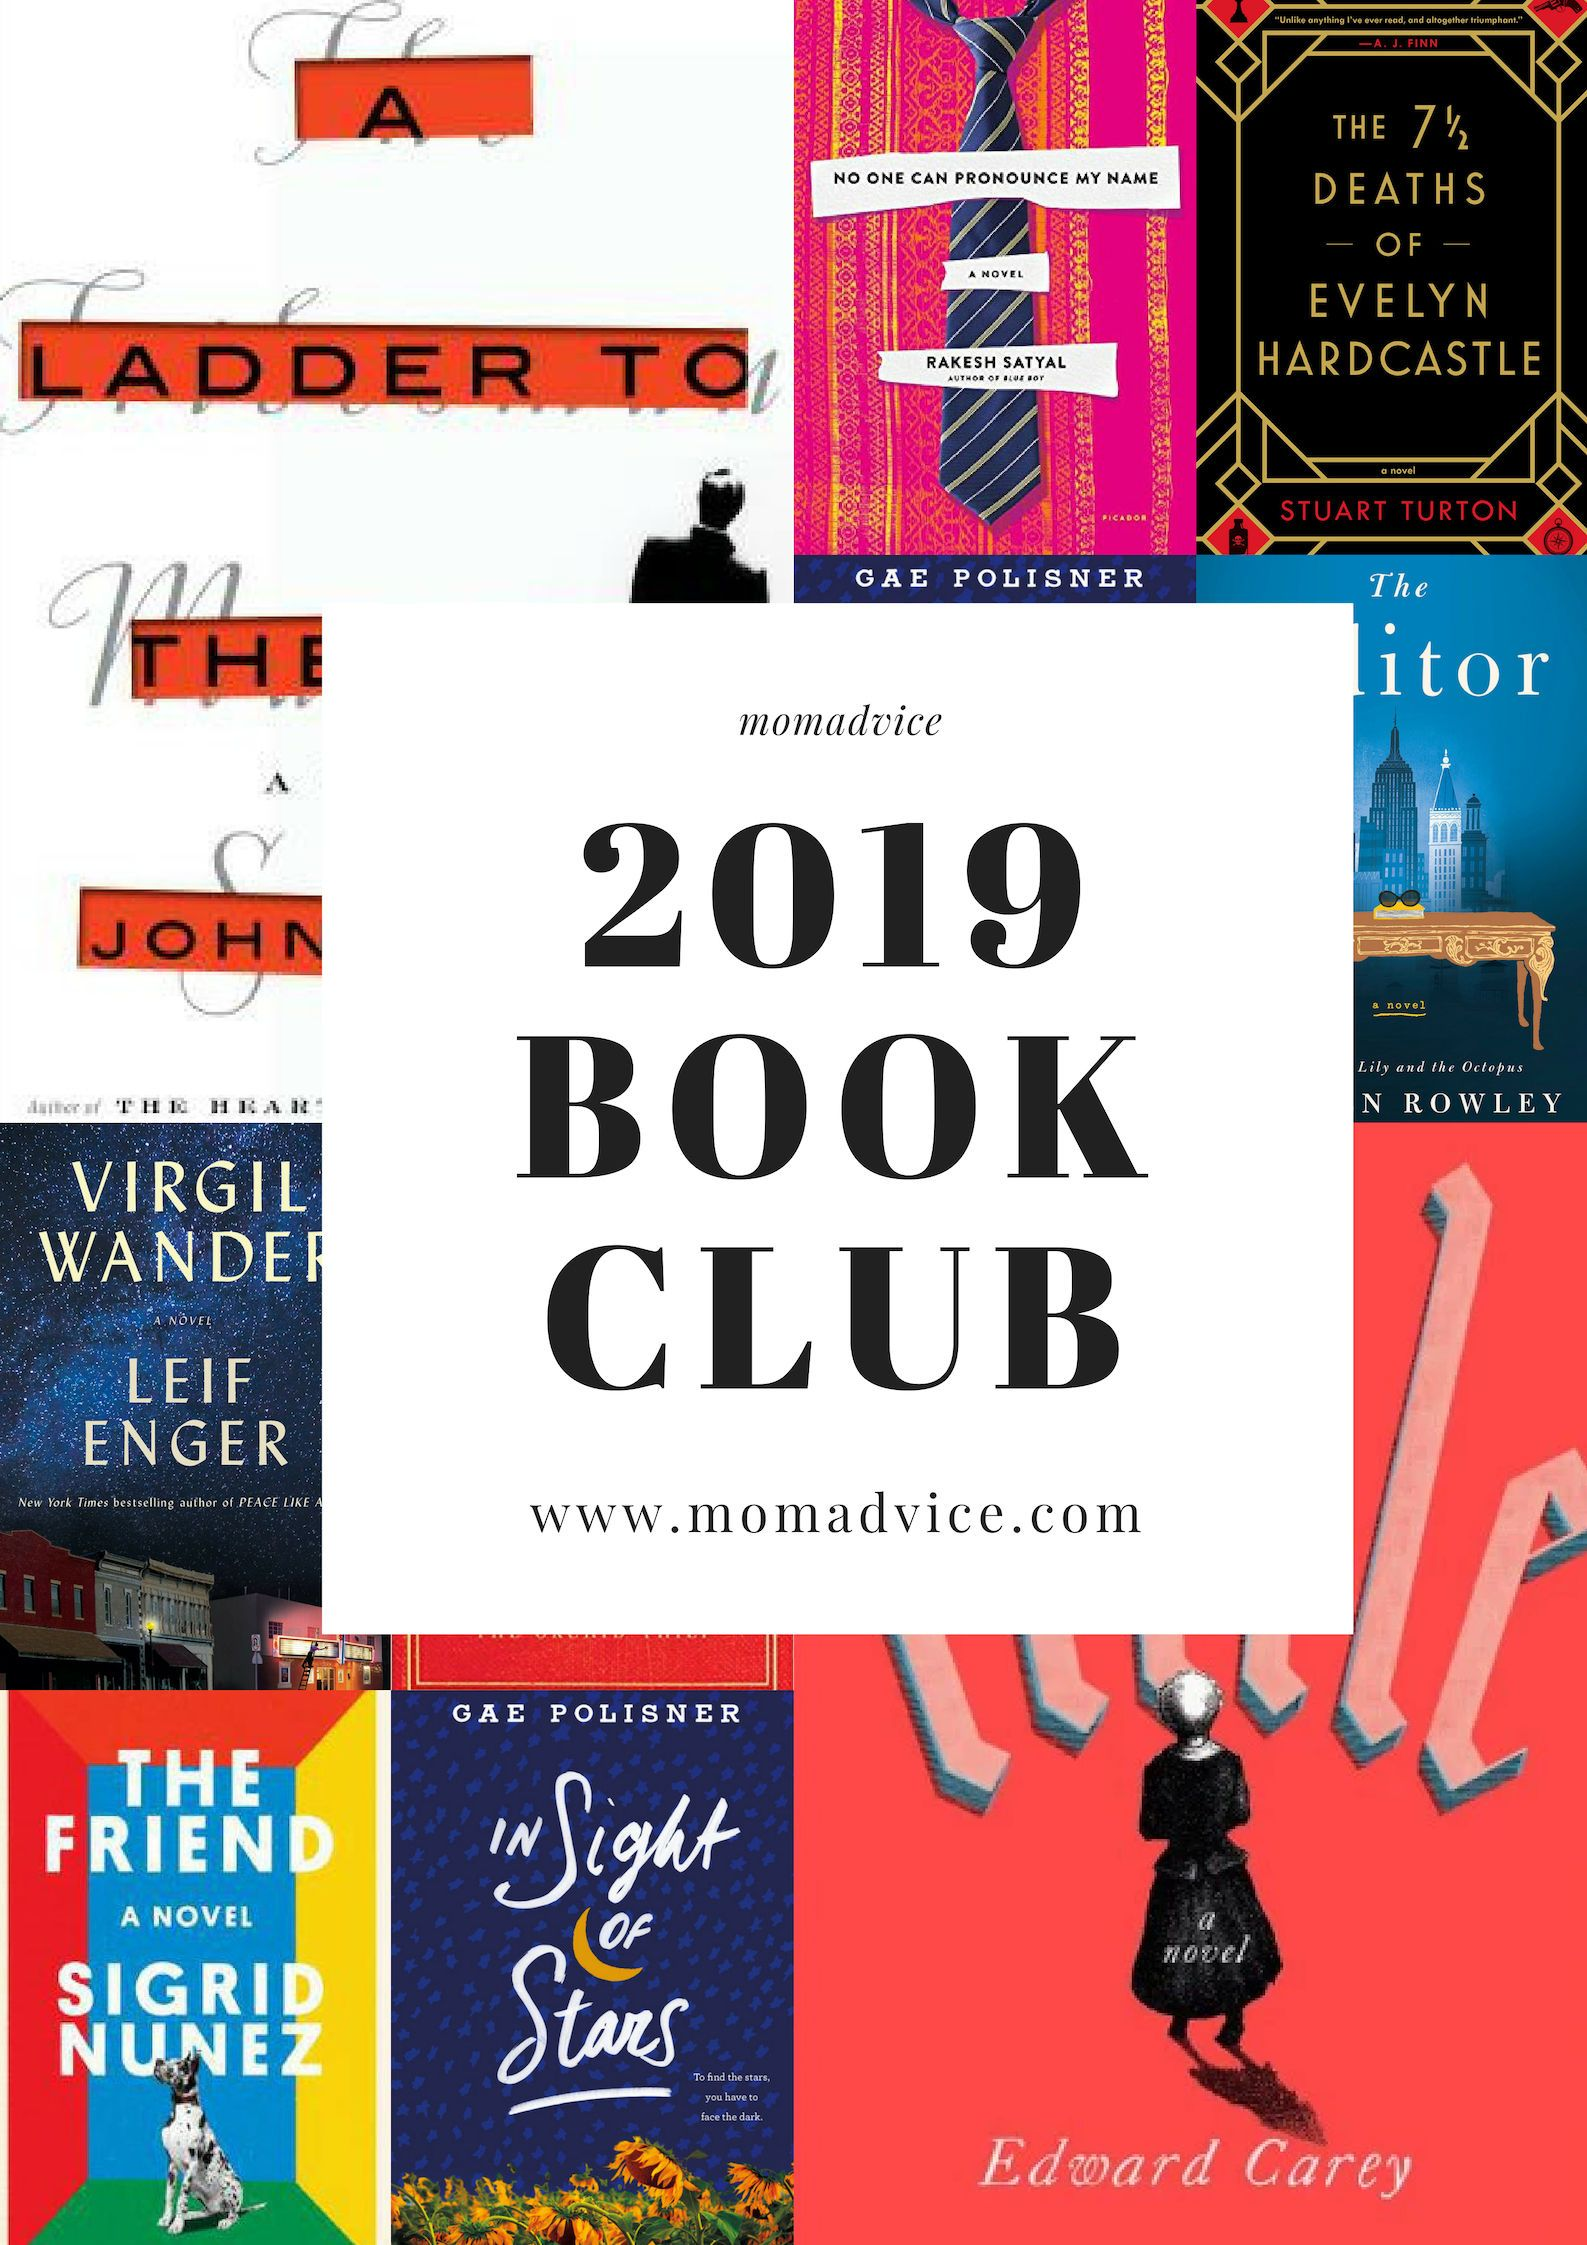 Best Books For Book Club 2019 2019 Book Club Selections in 2019 | read it | Best book club books